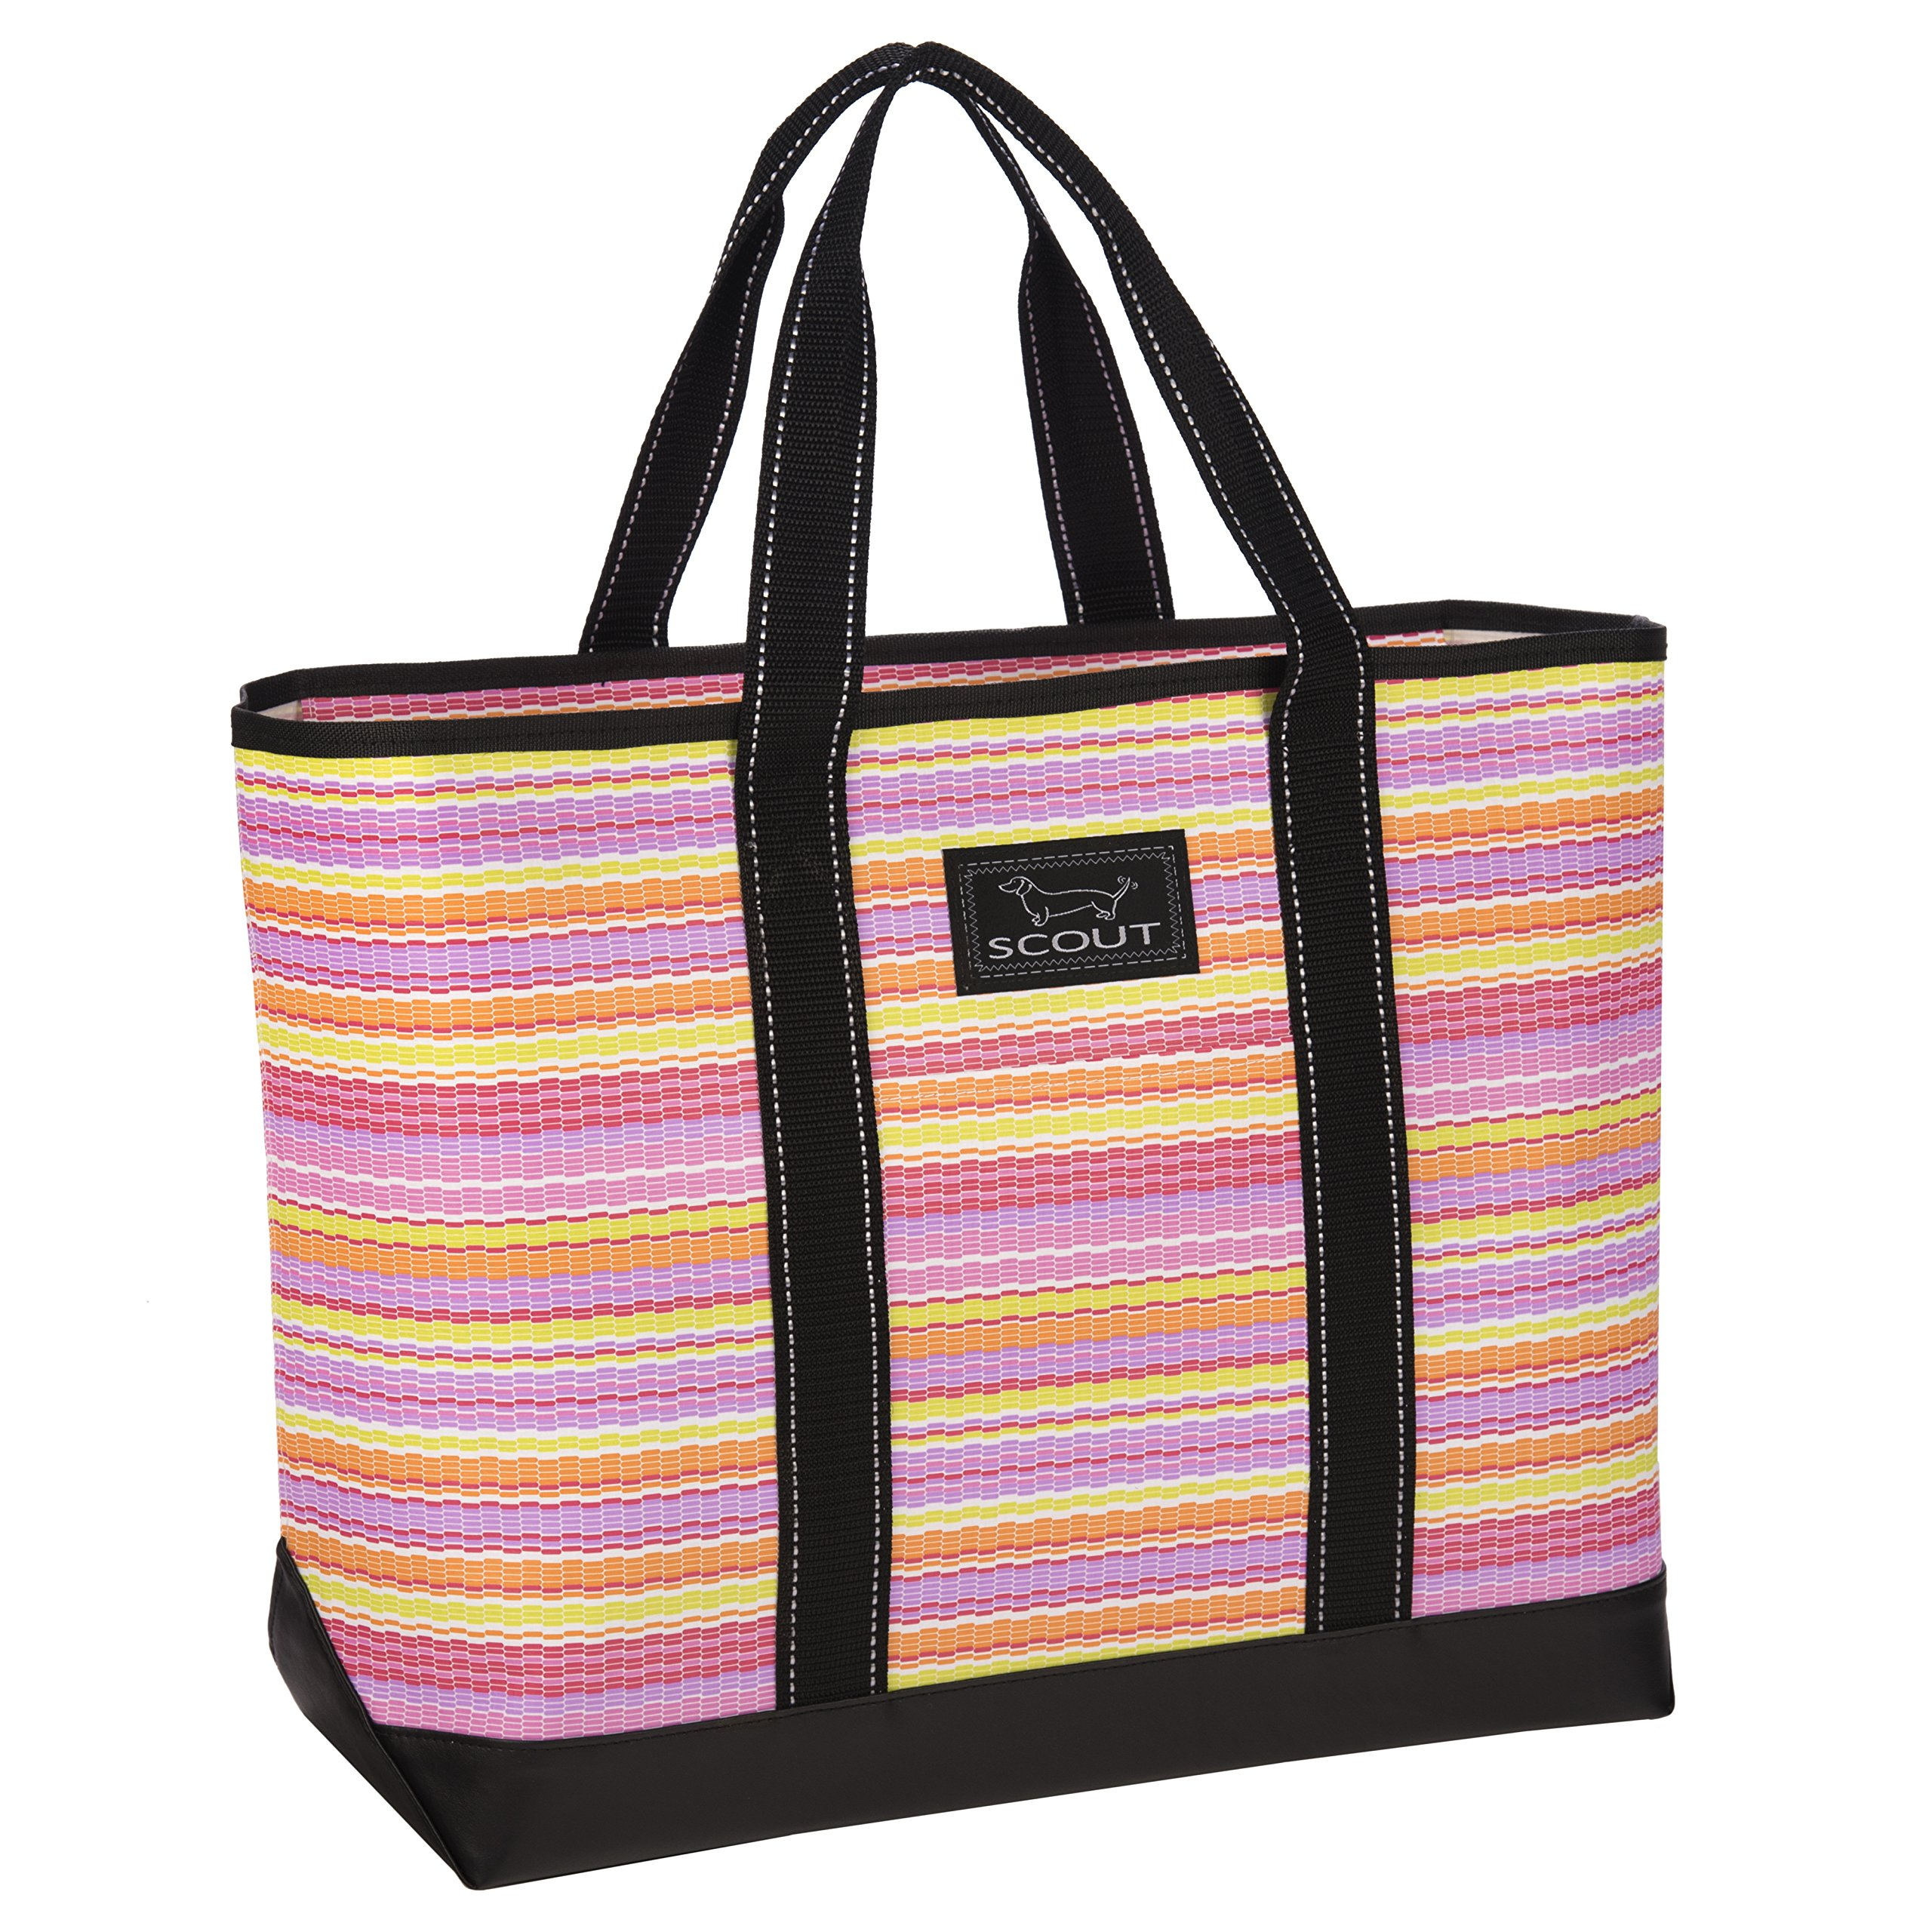 SCOUT Beach Bum Large Tote Bag, For the Beach or Pool, Slim Profile, Folds Flat, Sand and Water Resistant, Zips Closed, Sunfetti